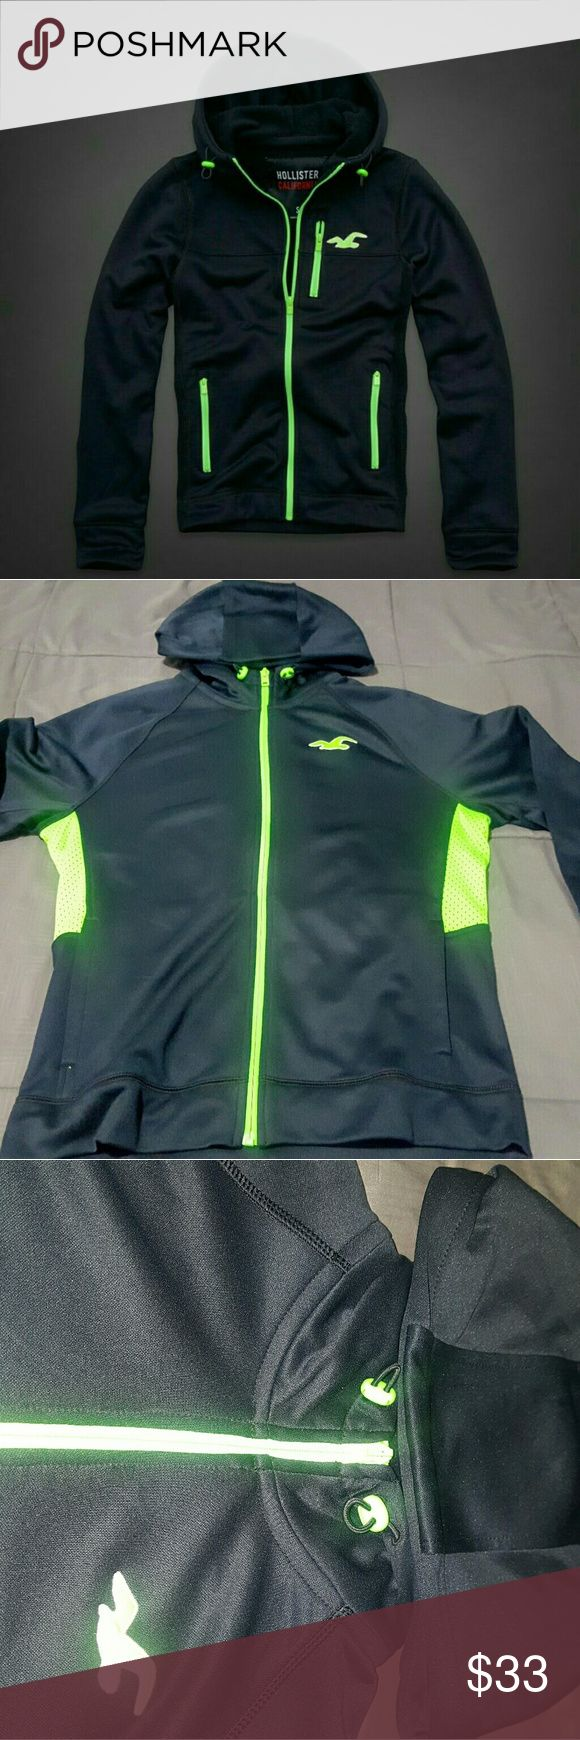 Men's Hollister Full-Zip Sports Hoodie ( L ) New Brand New - From EaZy Ebay & Amazon Sales?  Hollister full zip-up sports polyester hoodie. Dark blue solid color with lime green lining and hollister logo. Fabric 95% Polyester, 5%. Has Headphone pocket on left (inside ) part of the hoodie.  Has thumb holes for comfortable wear.  The only available size is LARGE. Item is in brand new condition.  Very soft fabric and very comfortable and lightweight. Great for any kind of sports or athletic…